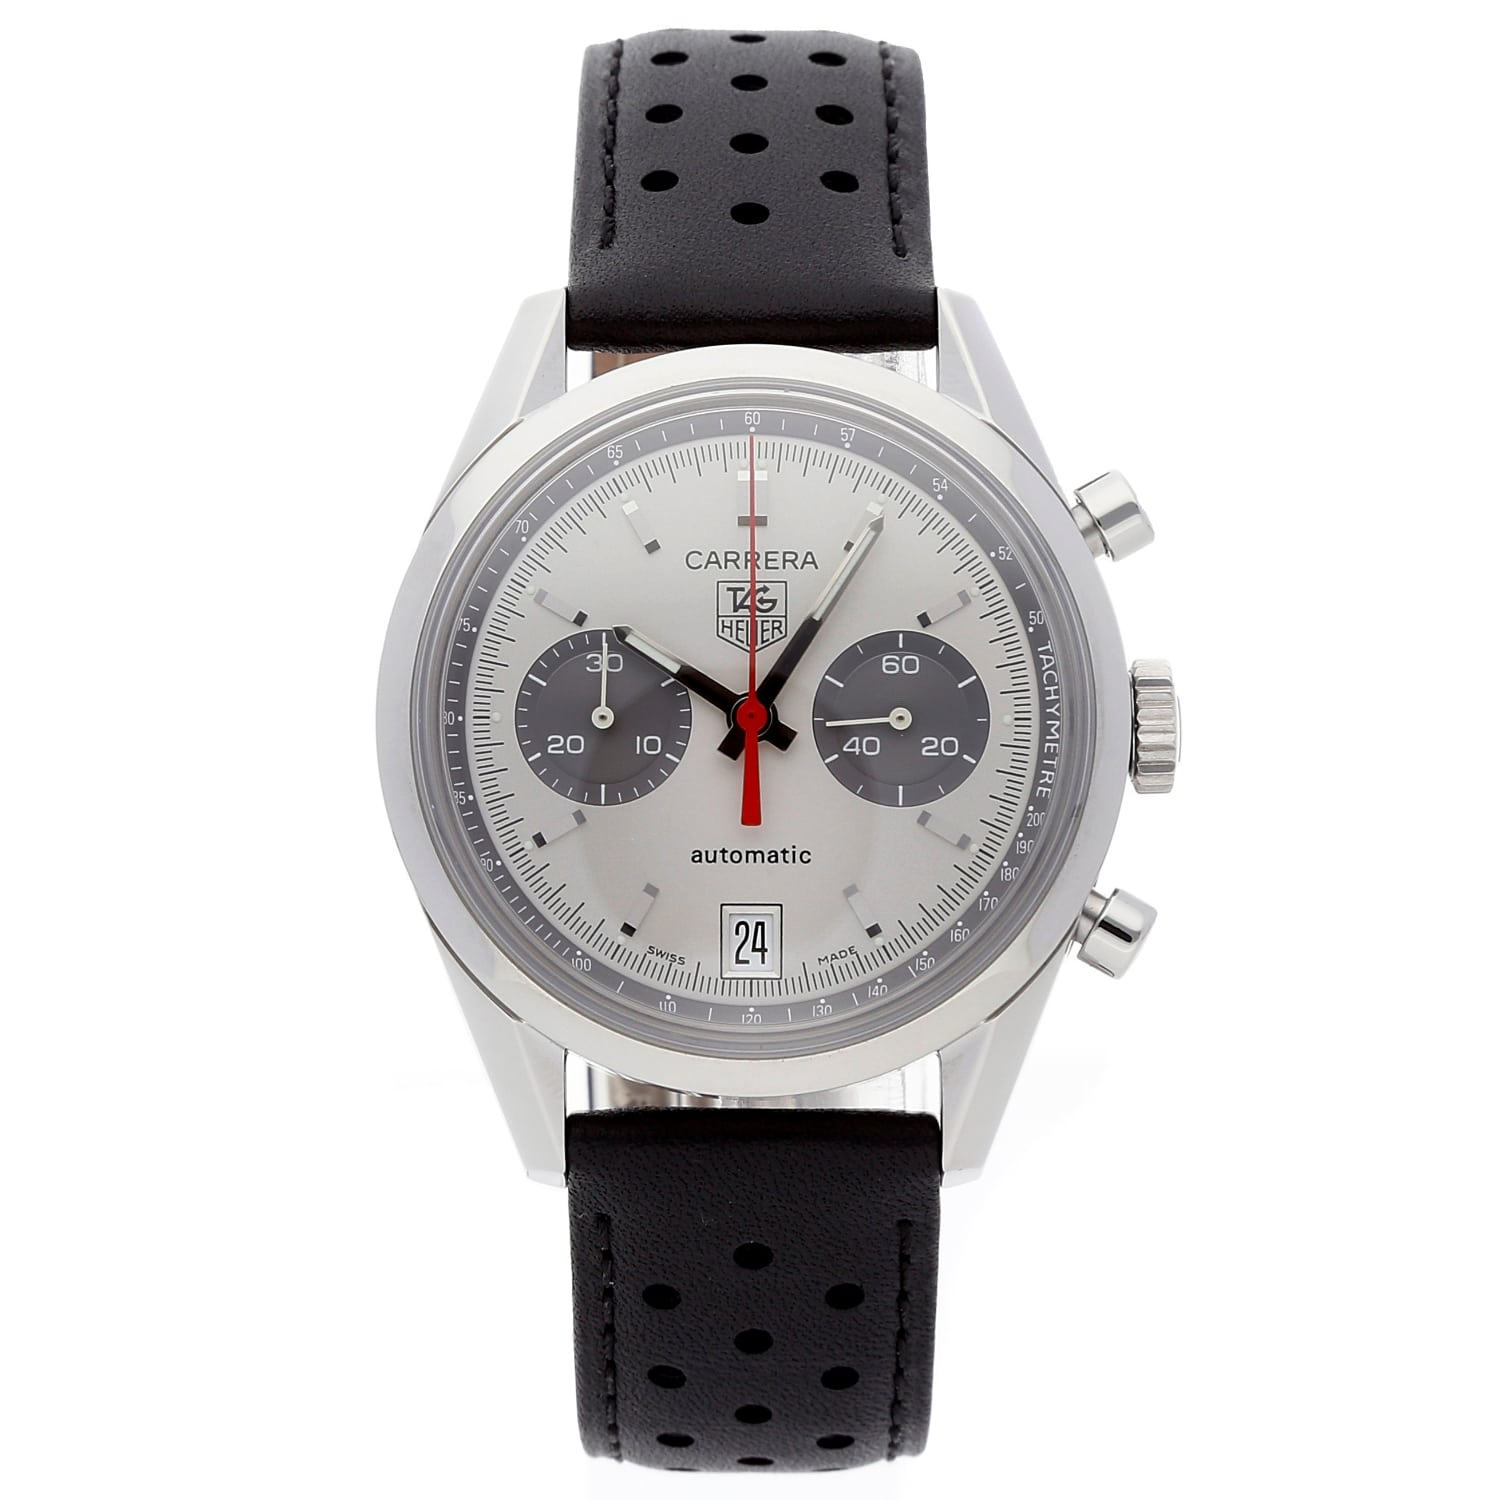 Tag Heuer Carrera via WatchBox timepieces